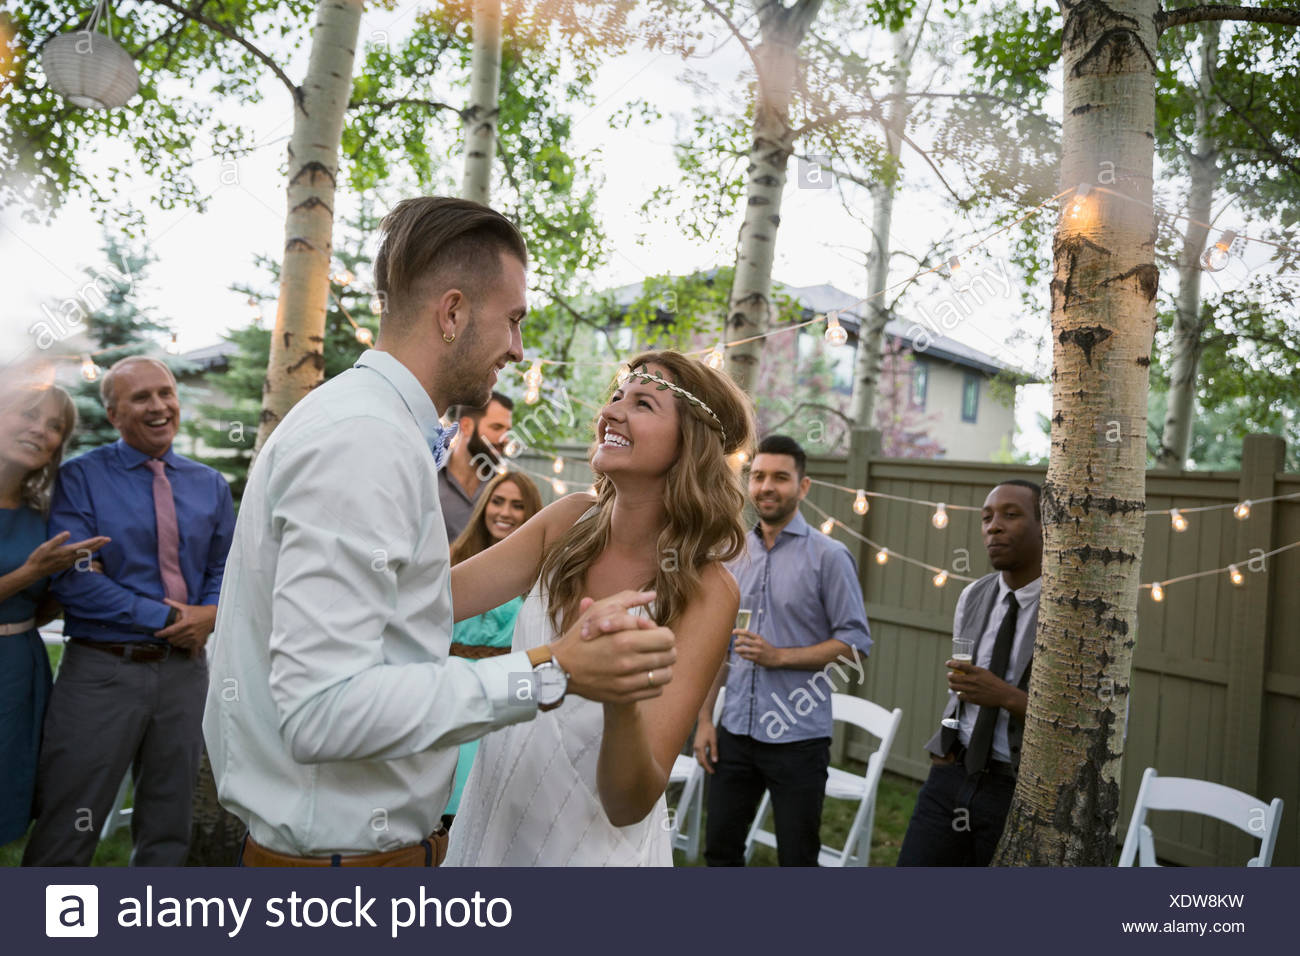 Bride and groom dancing at backyard wedding reception - Stock Image